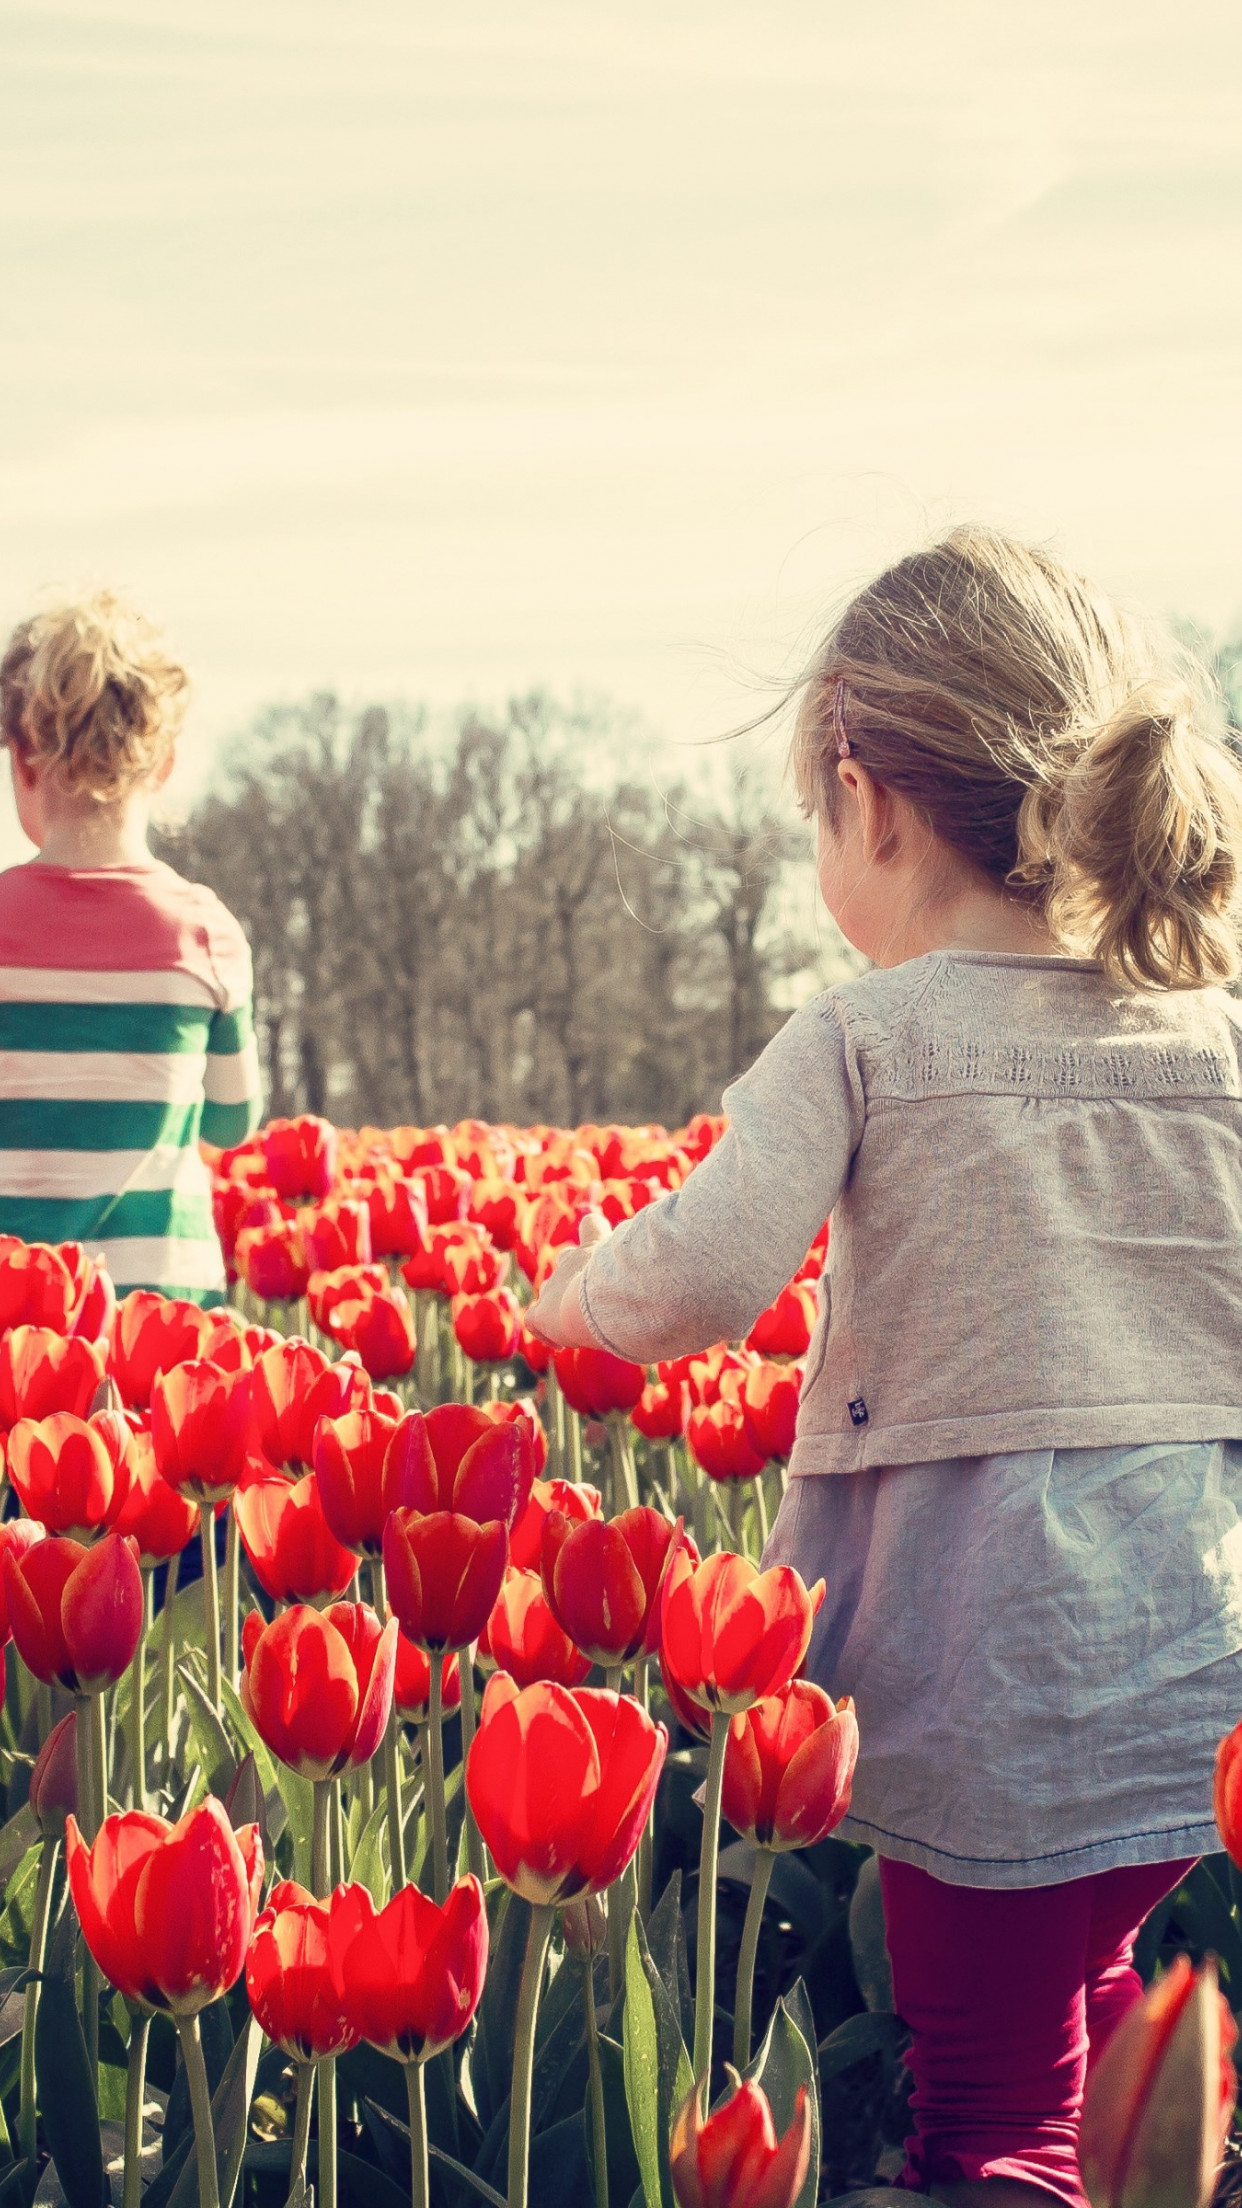 Children in the land with tulips | 1242x2208 wallpaper